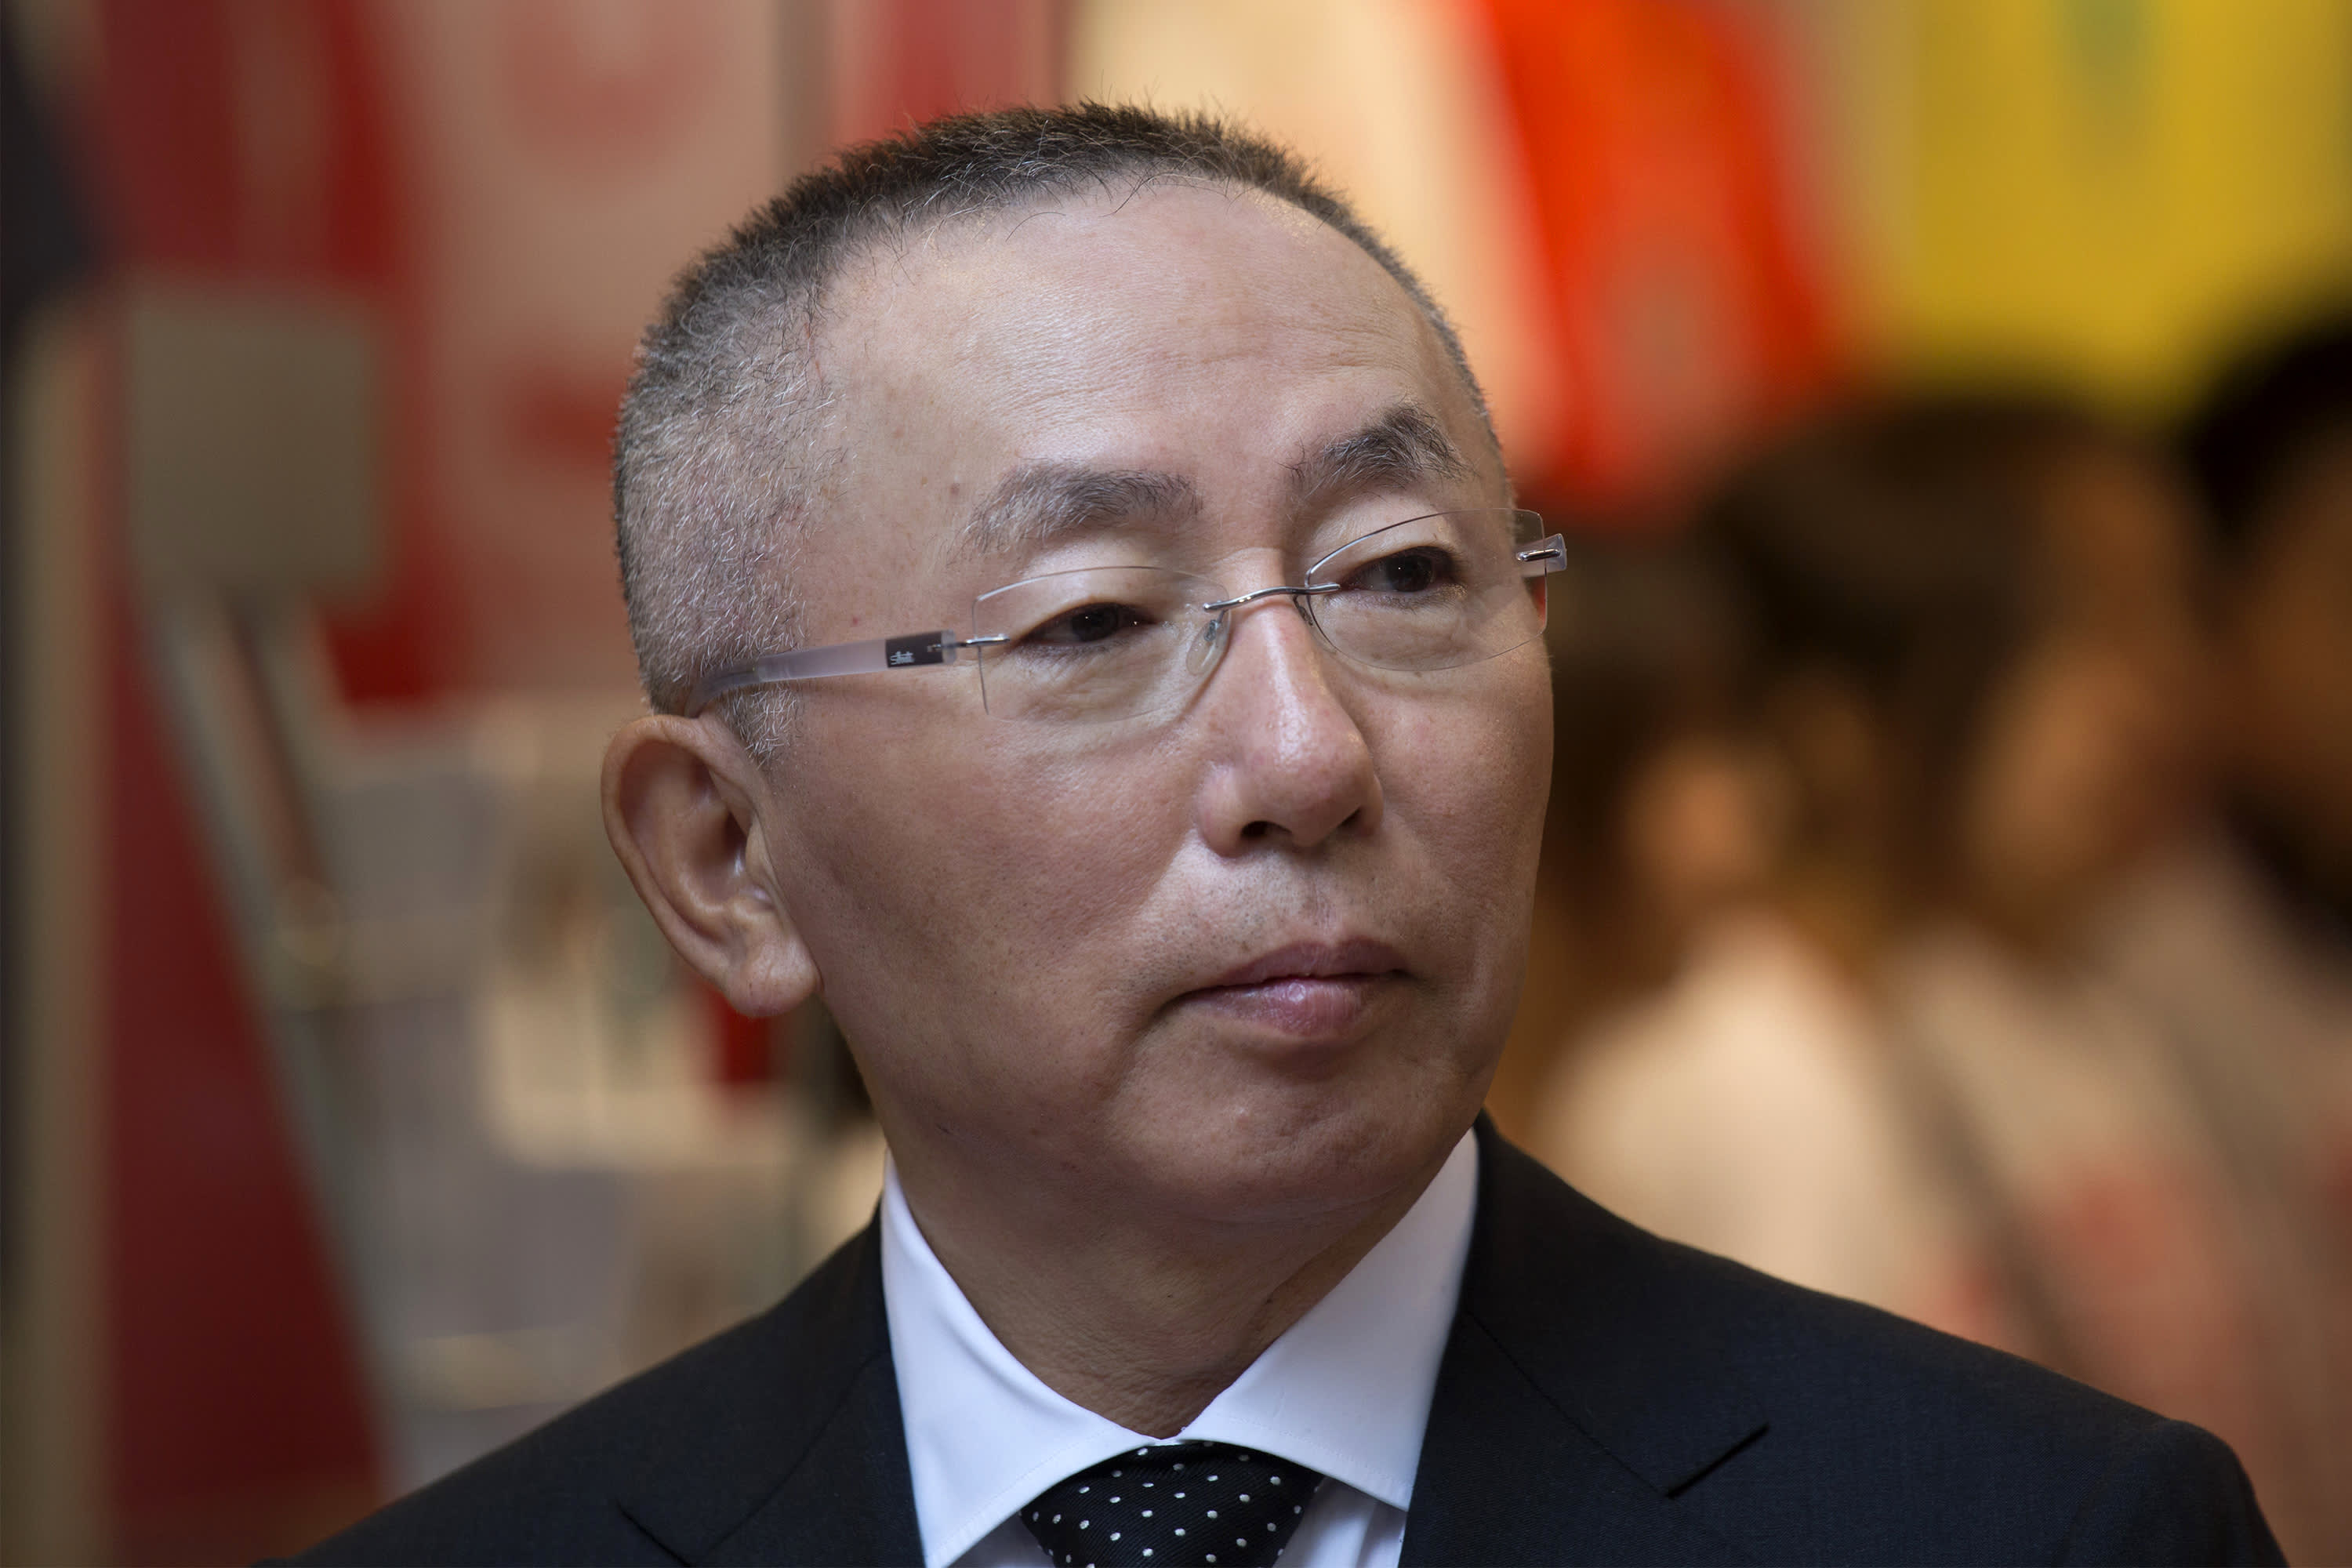 Uniqlo owner Yanai surrenders as SoftBank board participant  - 101345308 167522912